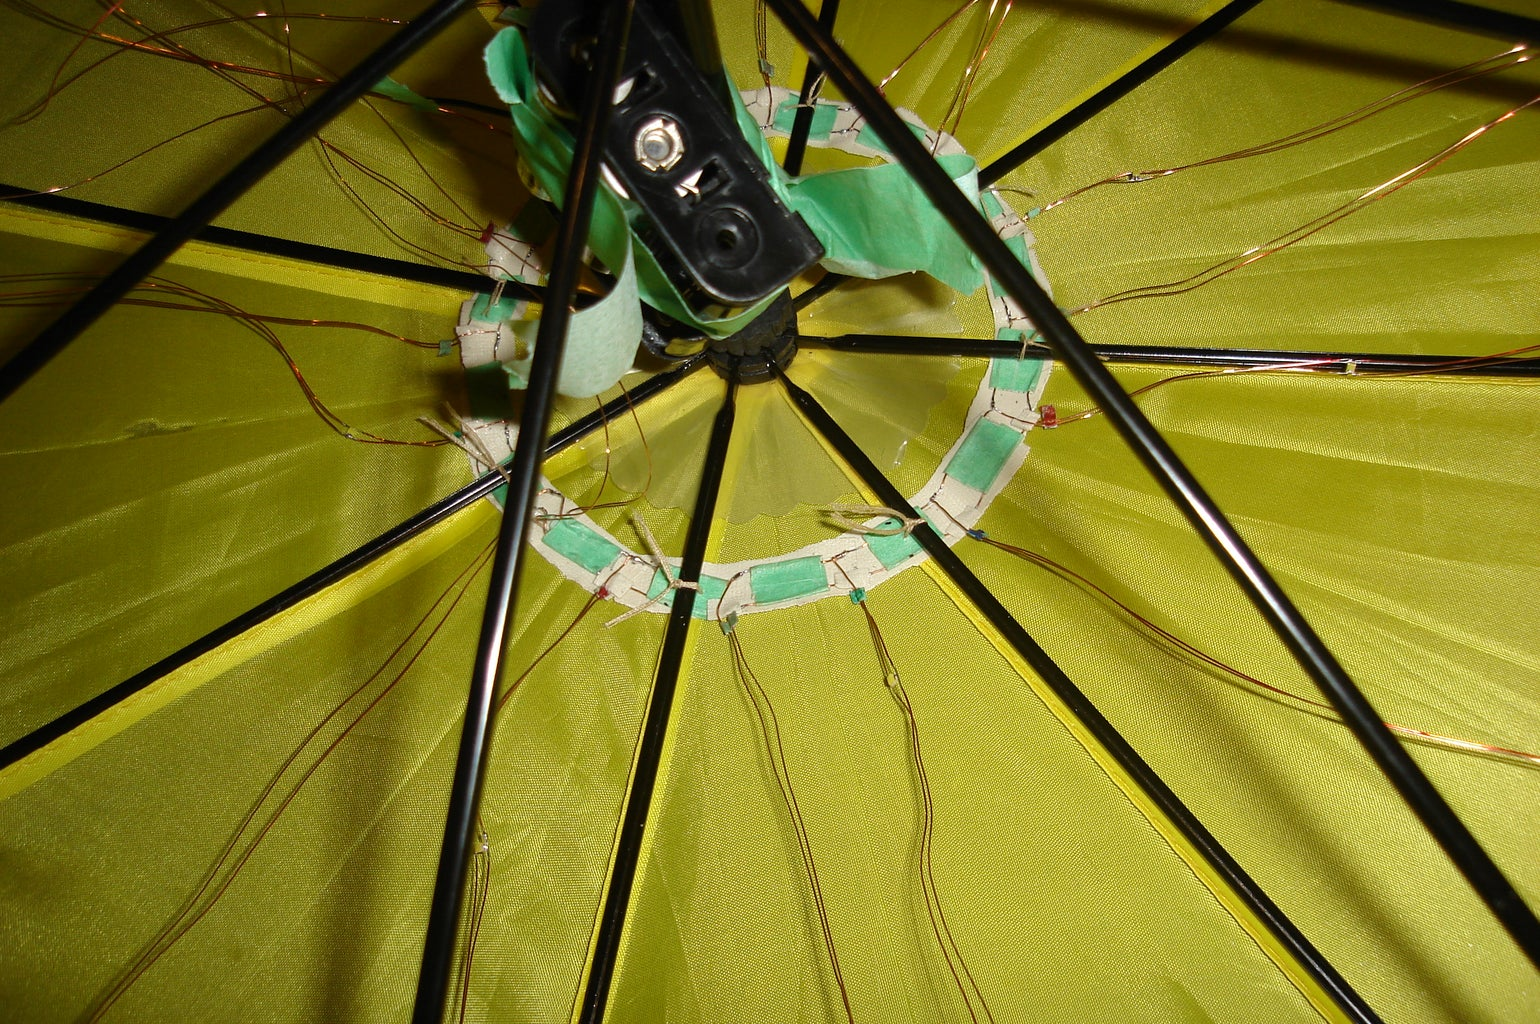 Get the Wires and Hub Into the Umbrella